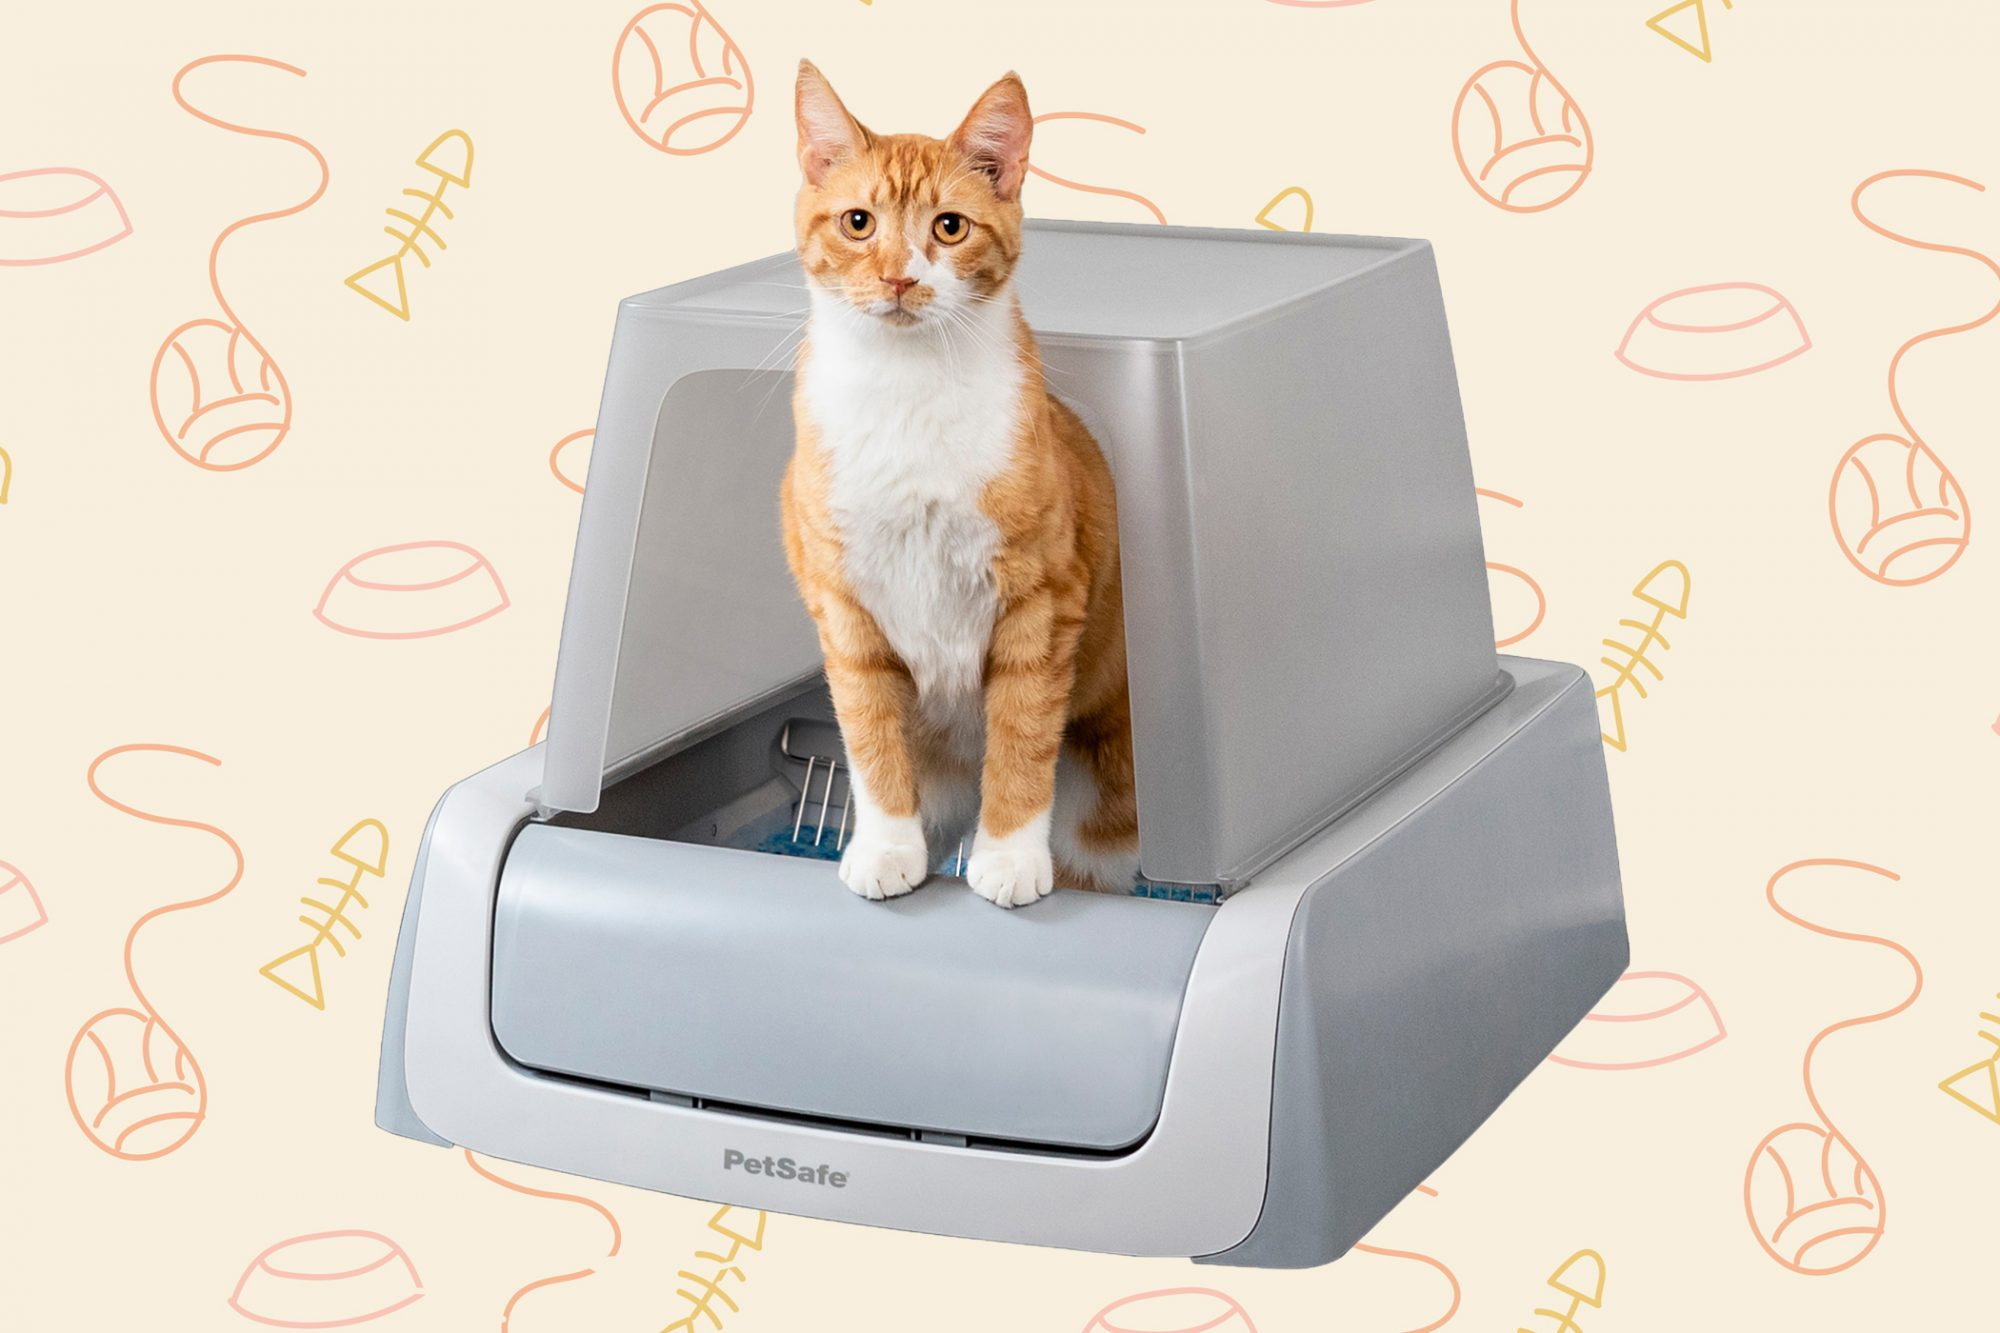 orange tabby coming out of a self-cleaning litter box